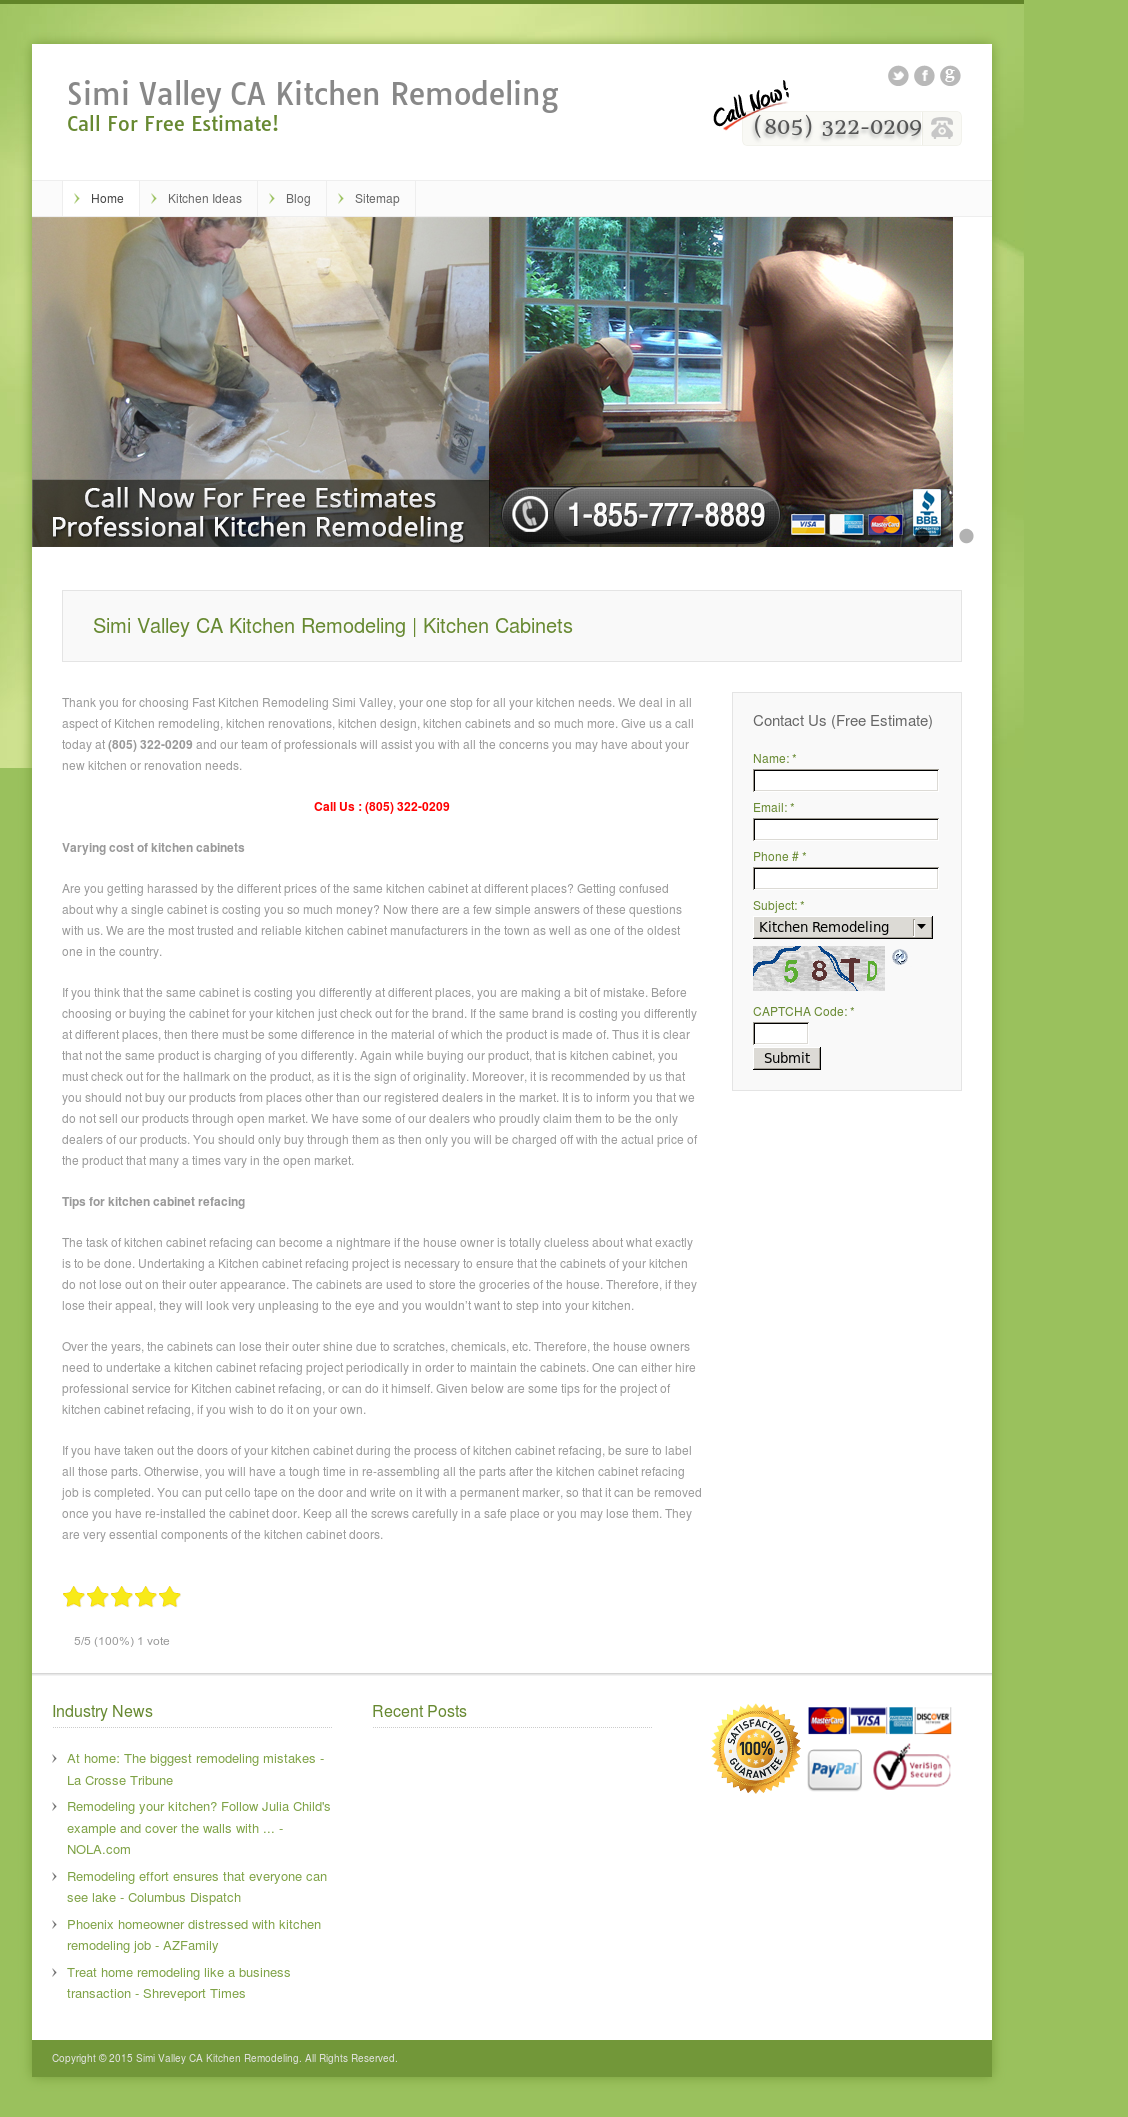 Simi Valley Ca Kitchen Remodeling Website History